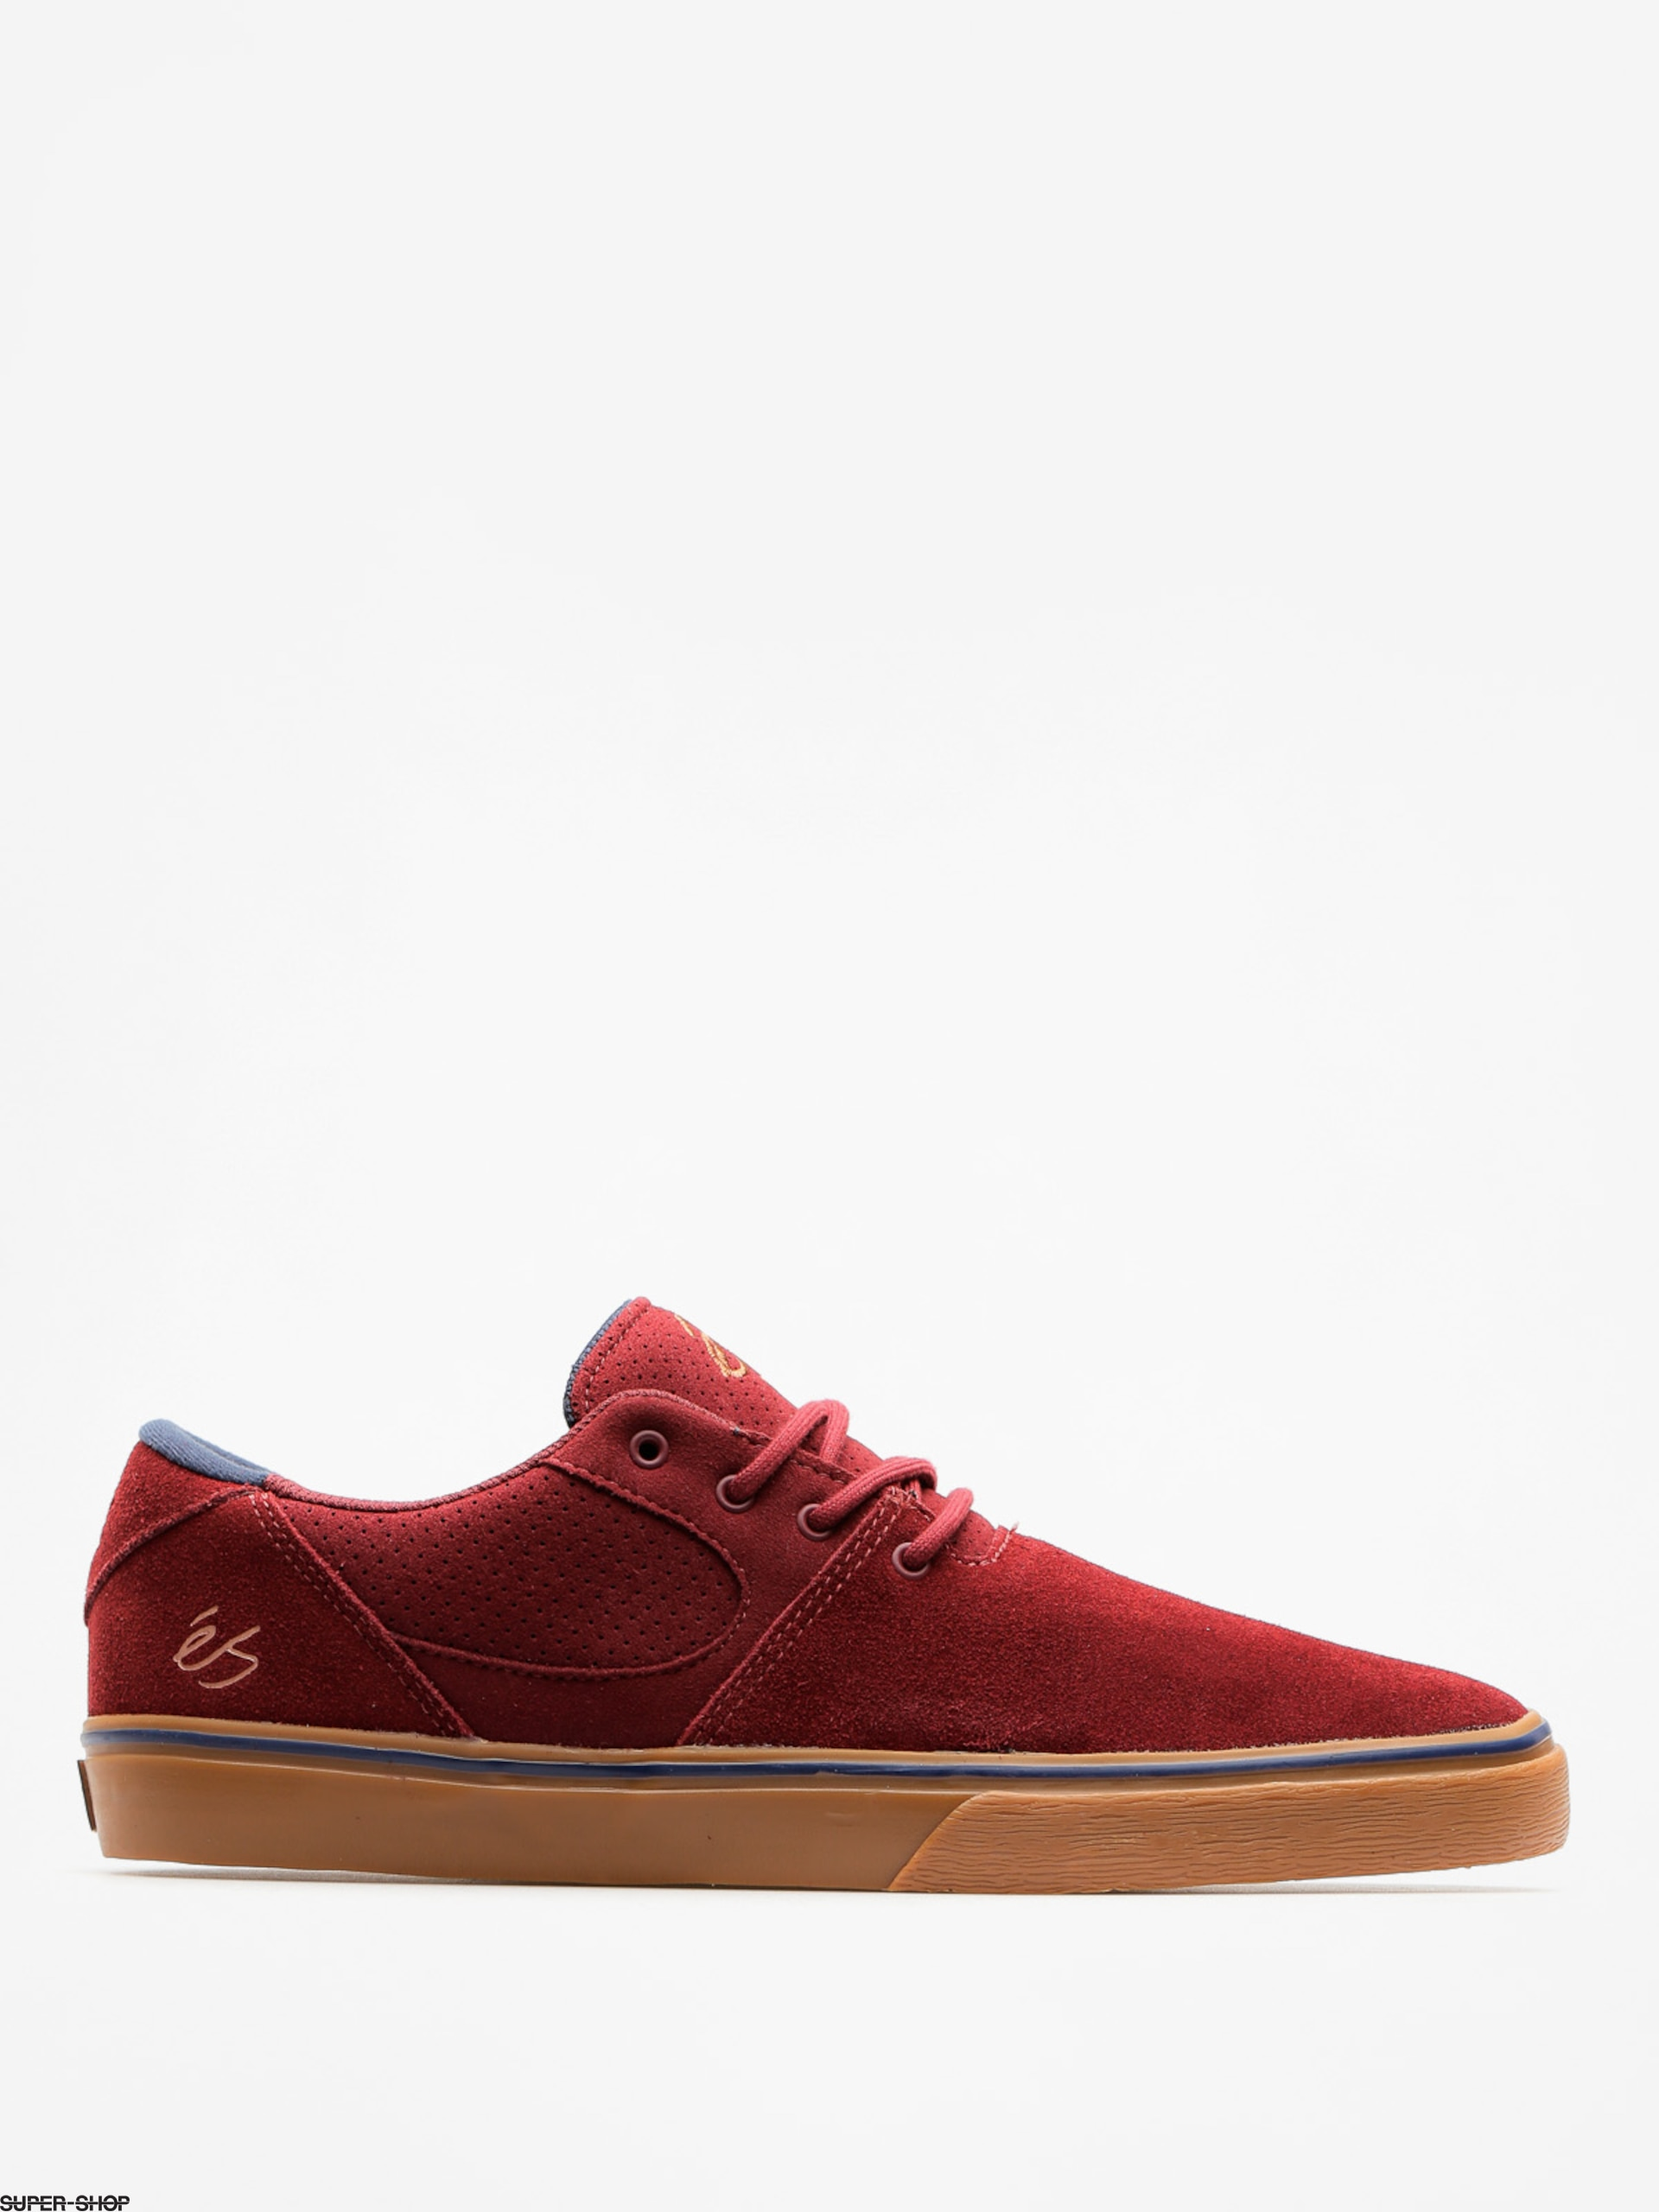 Es Shoes Accel Sq (burgundy/gum)